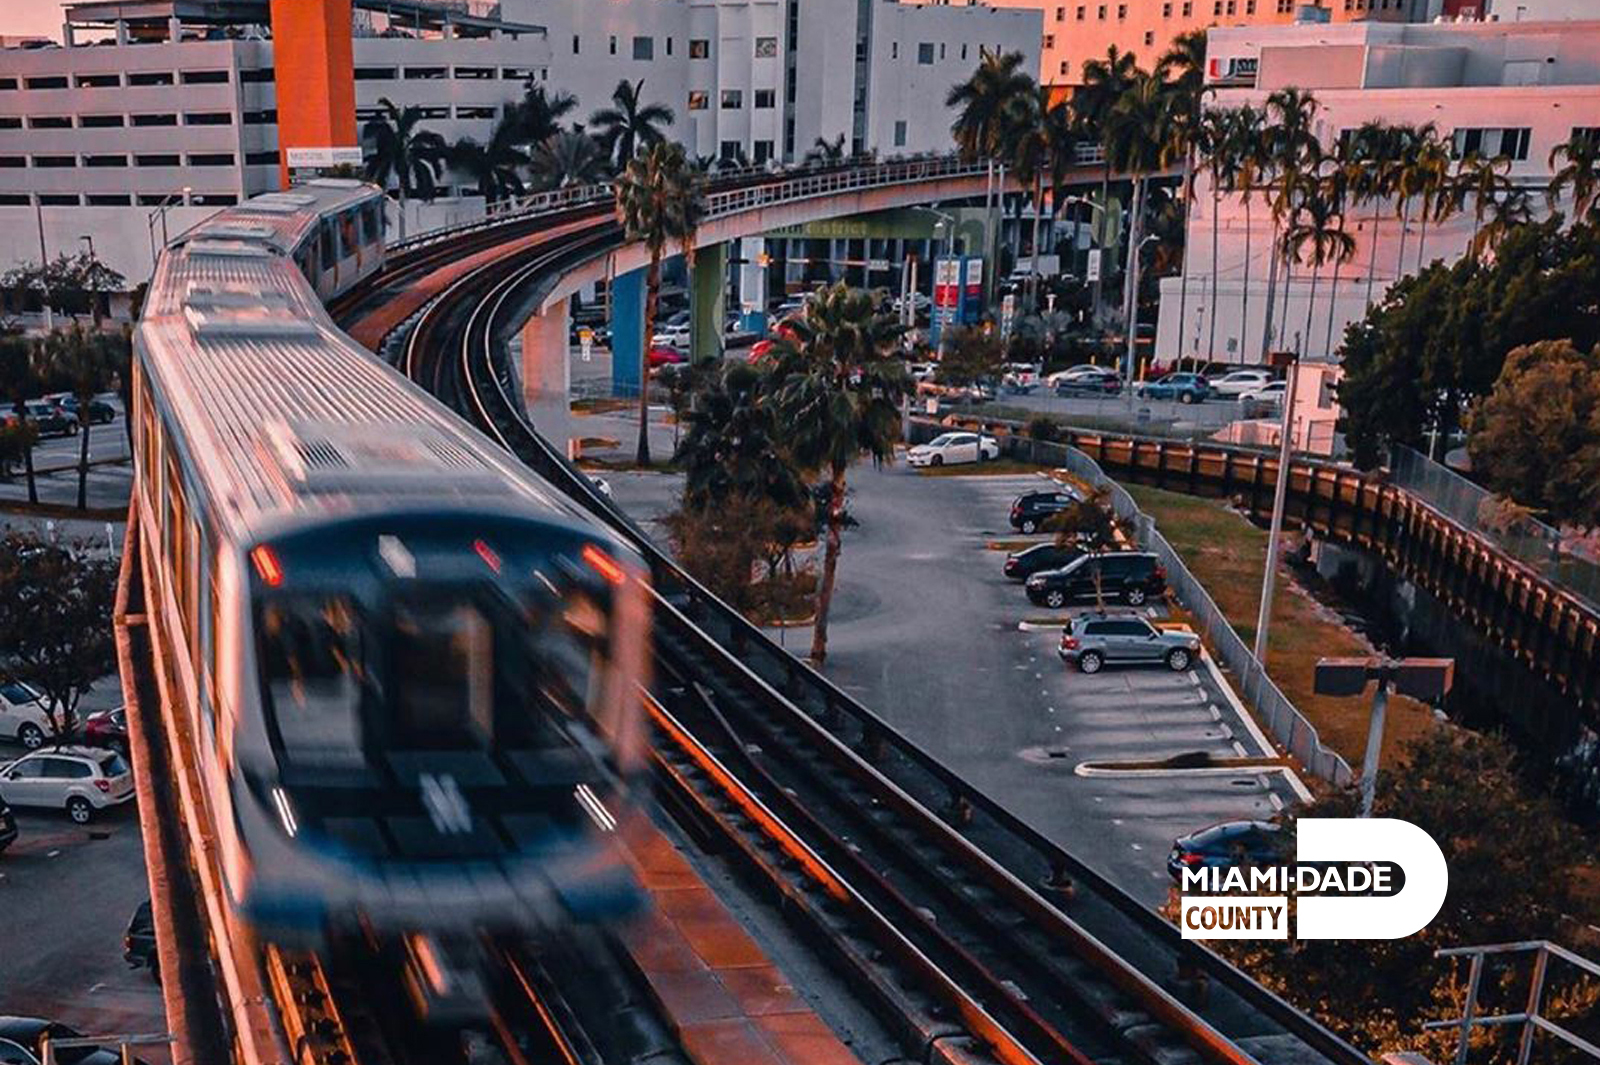 Miami-Dade still of public transport tram.